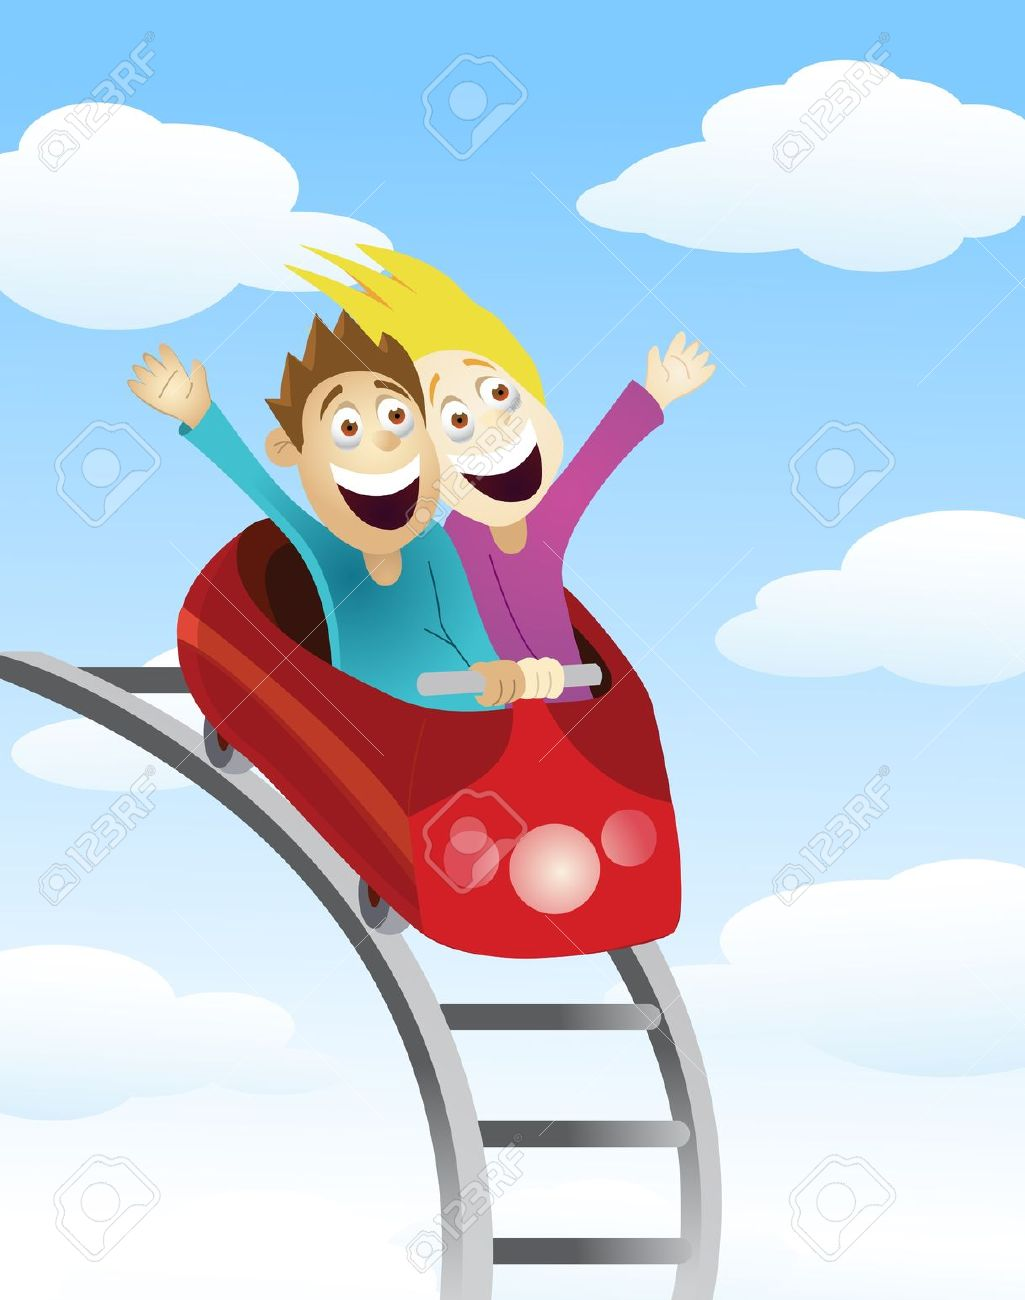 Man And Women An A Roller Coaster Royalty Free Cliparts, Vectors.